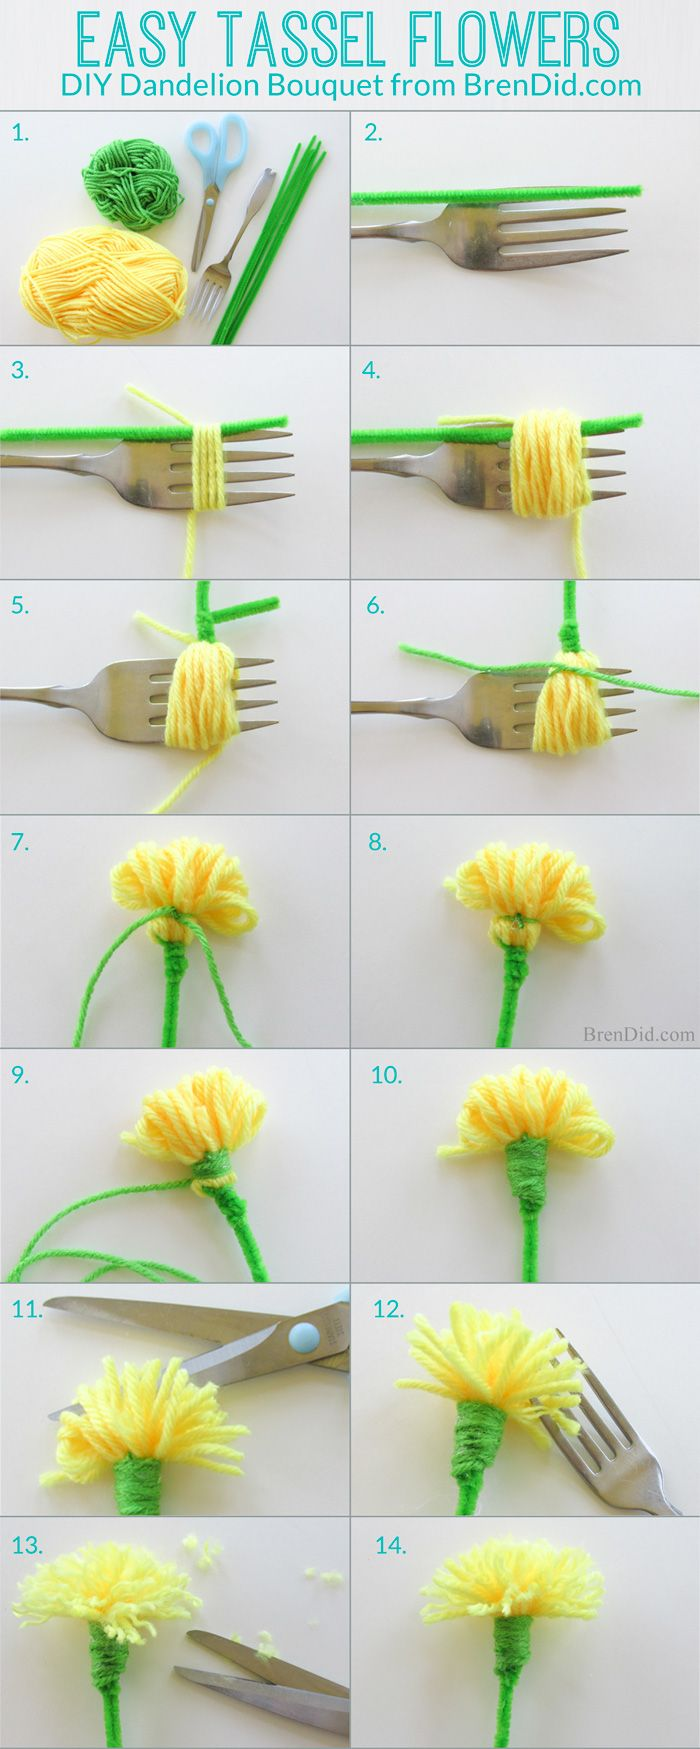 How to make tassel flowers - Make an easy DIY dandelion bouquet with yarn and pipe cleaners to delight someone you love. Perfect for Mother's Day.#DIY #tassels